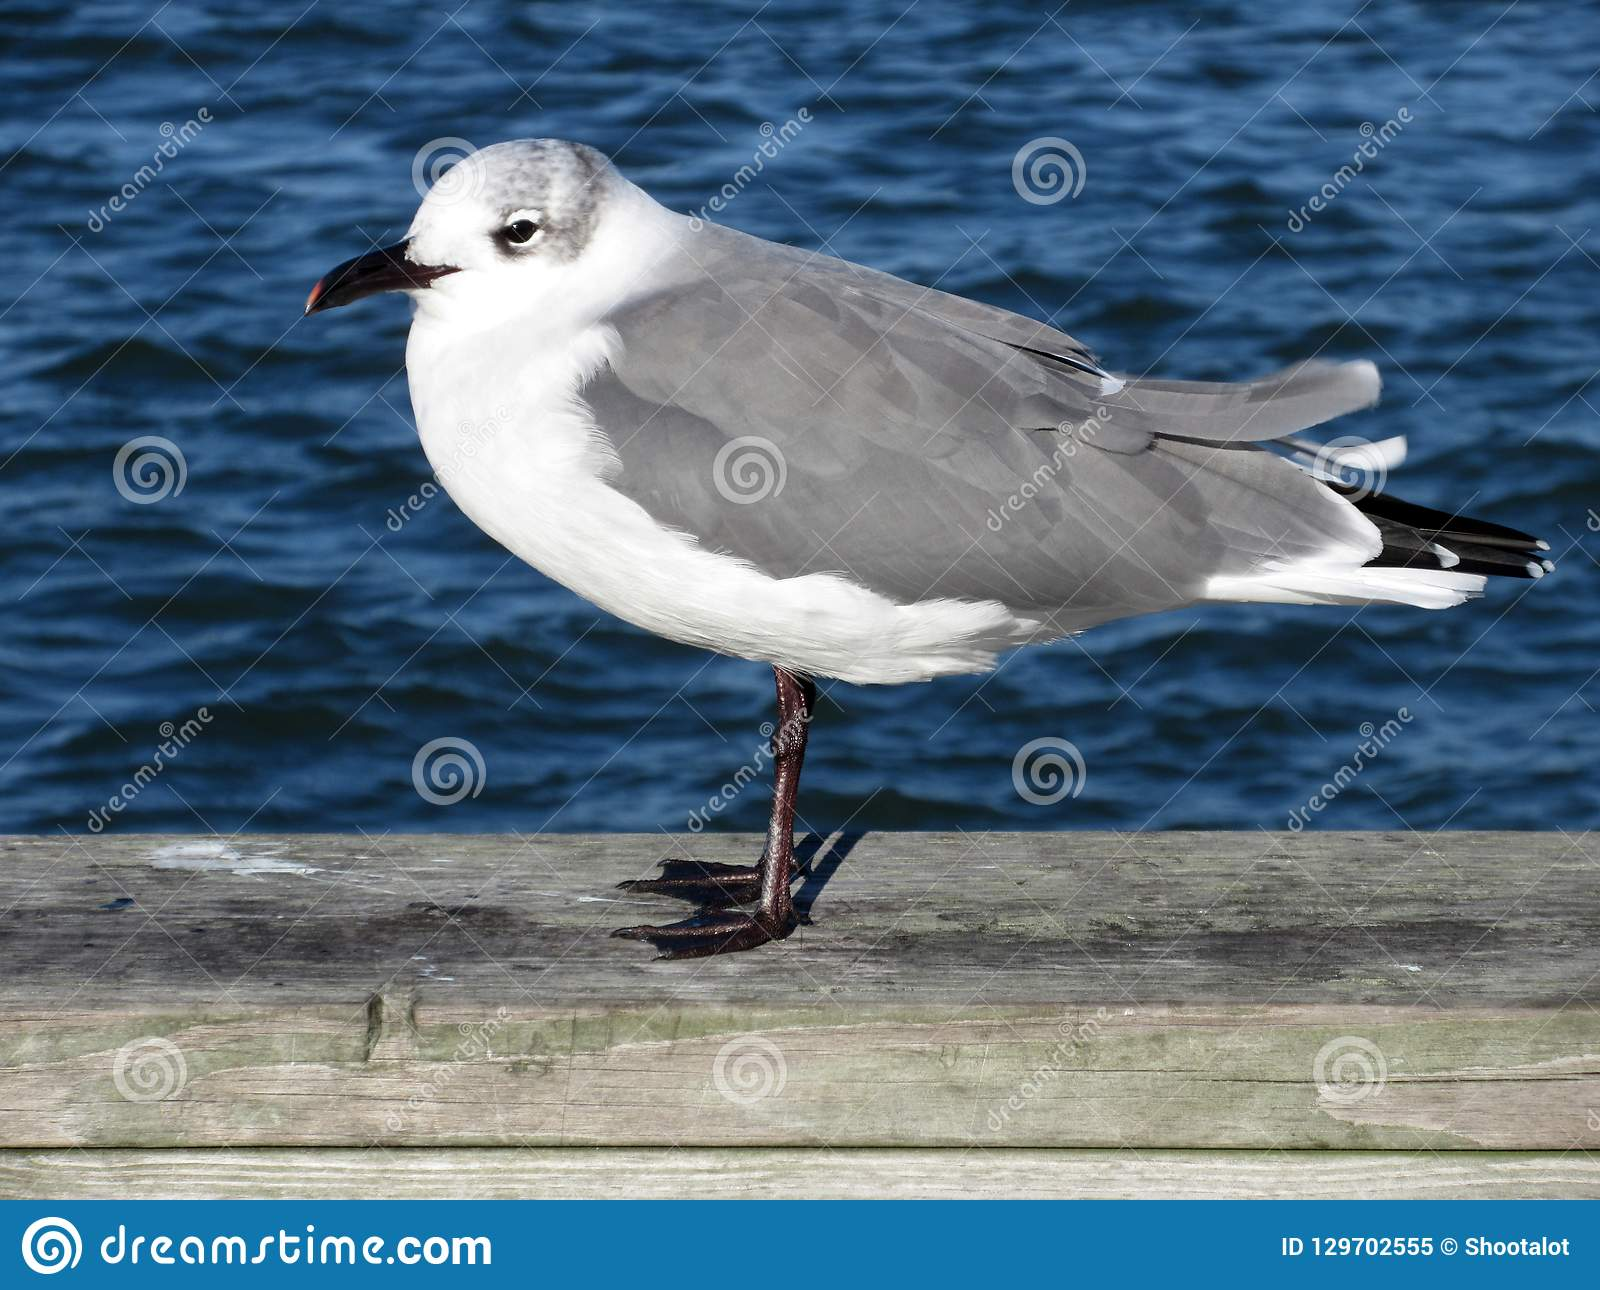 Seagull and Blue Water in Ocean City Maryland